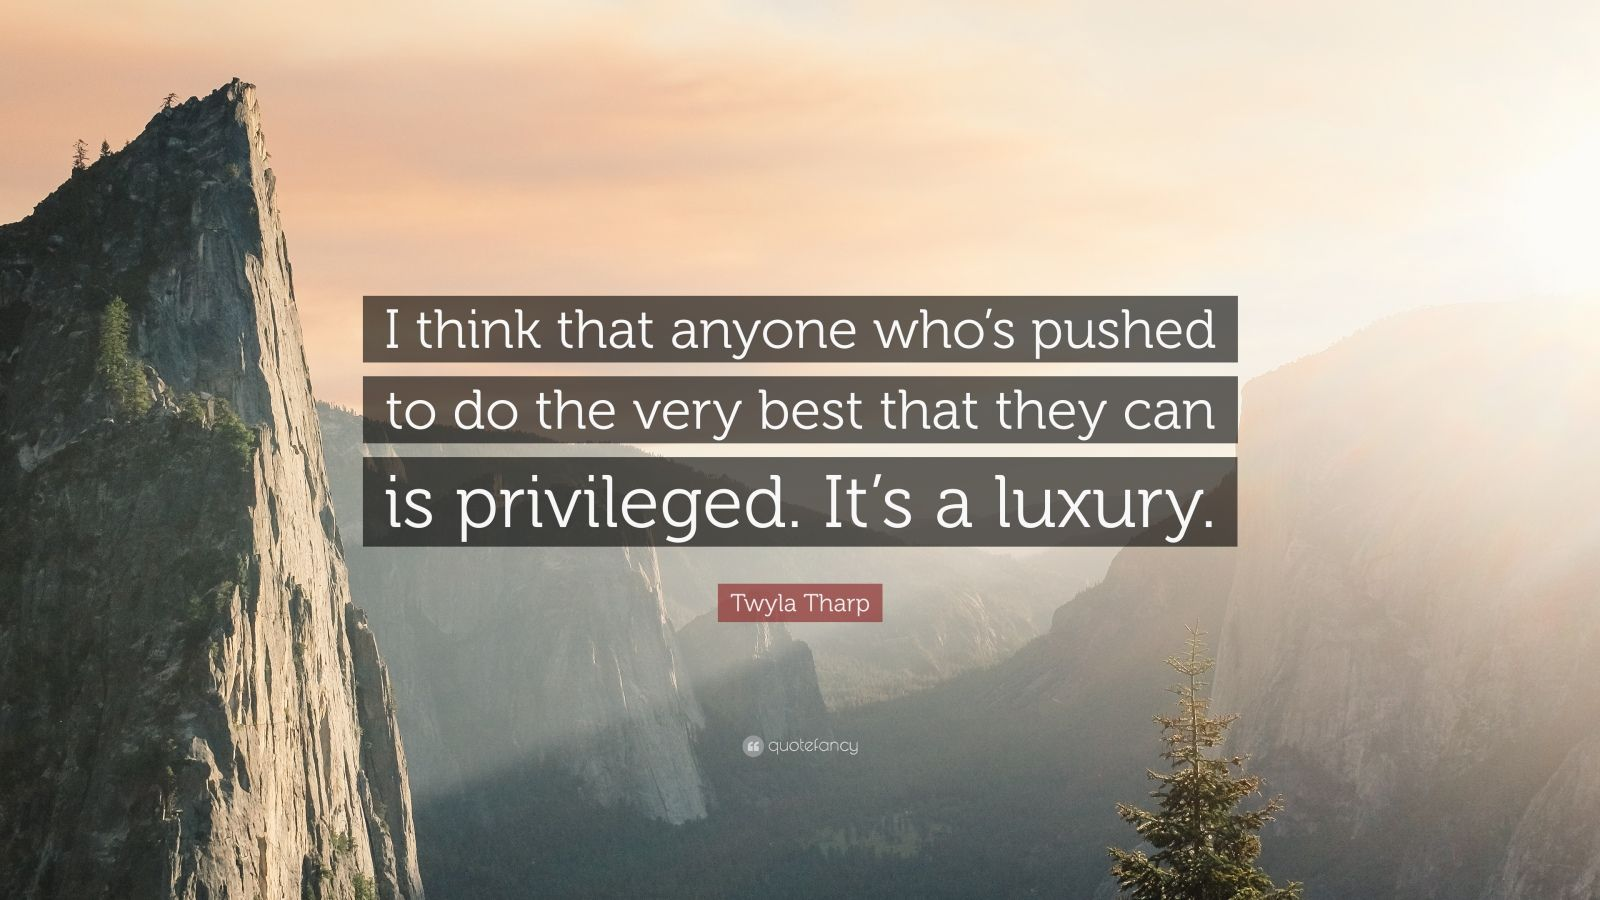 """Twyla Tharp Quote: """"I think that anyone who's pushed to do the very best that they can is privileged. It's a luxury."""""""